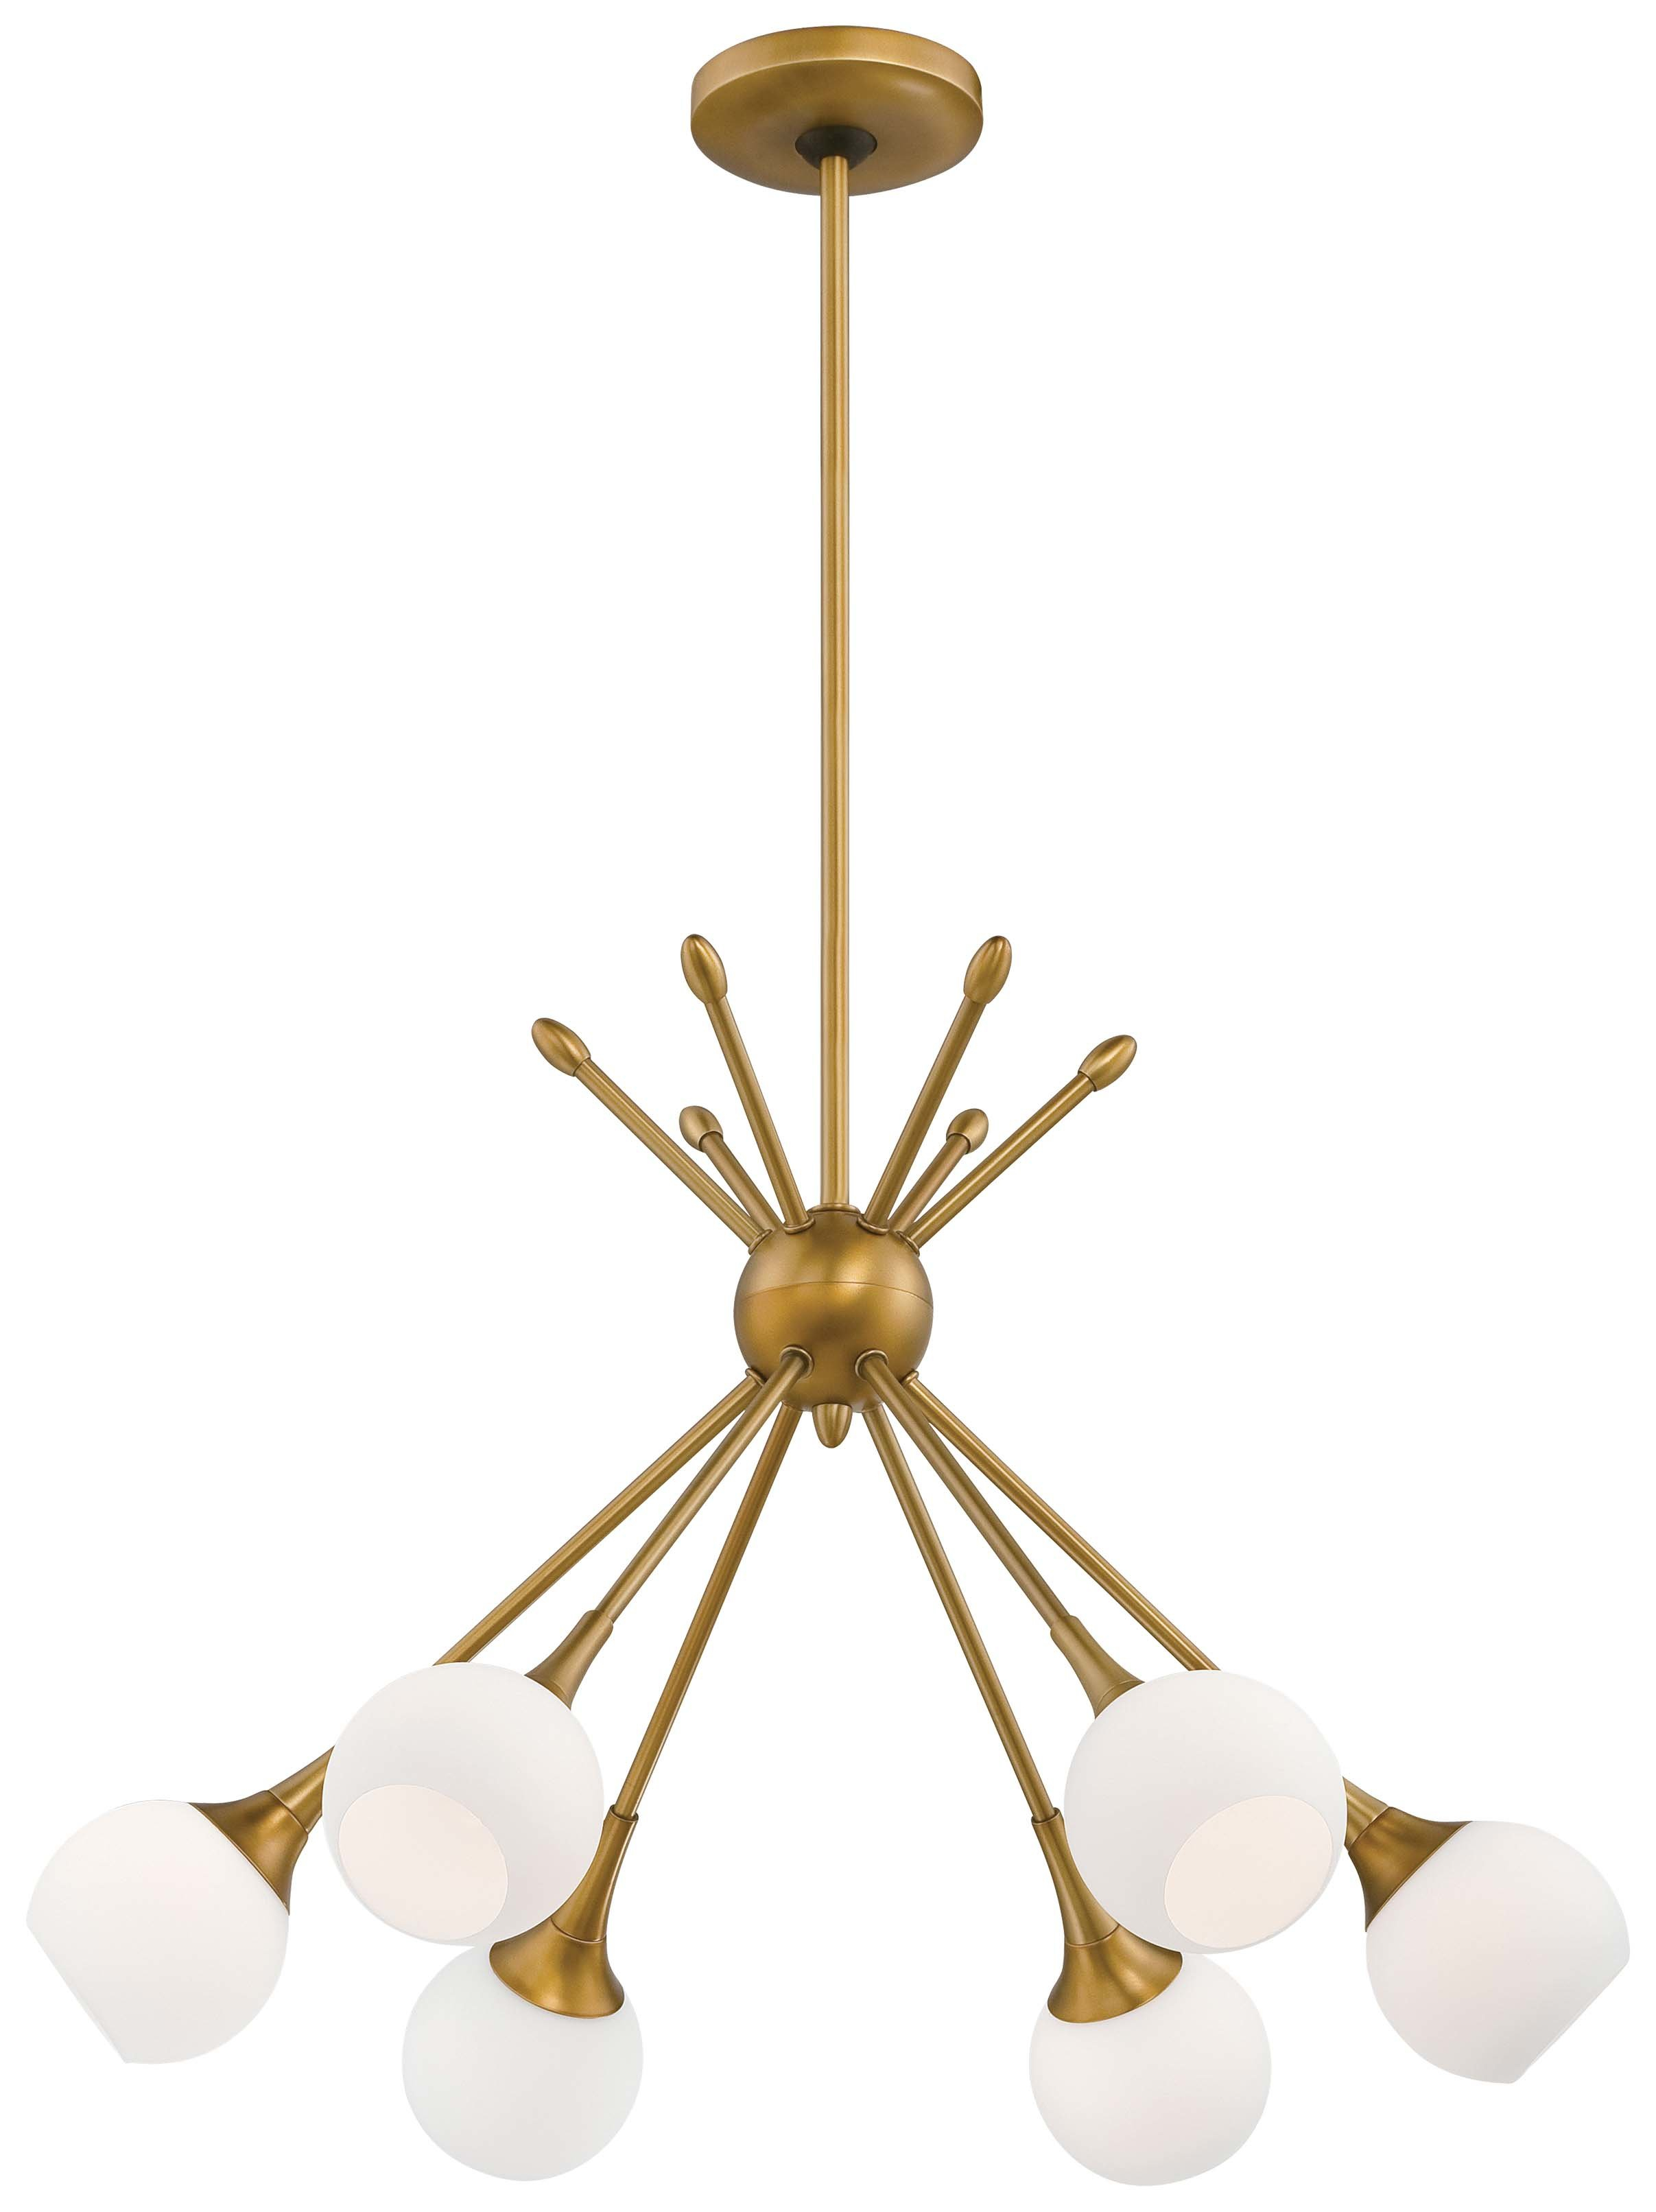 Silvia 6-Light Sputnik Chandelier pertaining to Asher 12-Light Sputnik Chandeliers (Image 29 of 30)